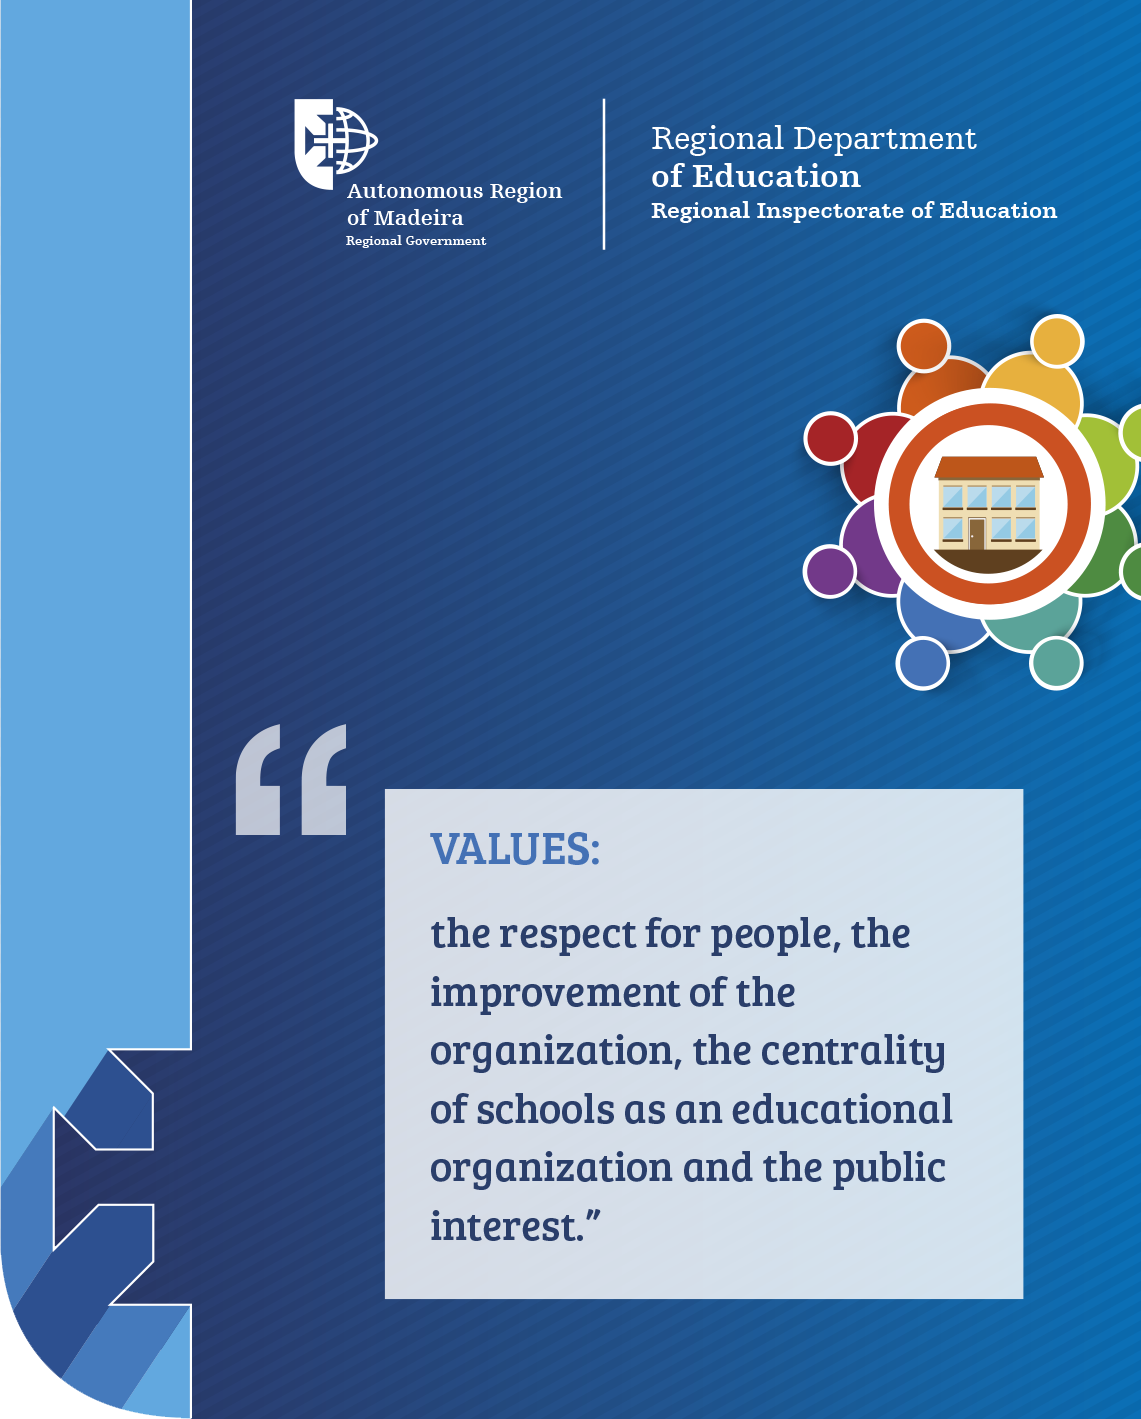 Values of the Regional Inspectorate of Education